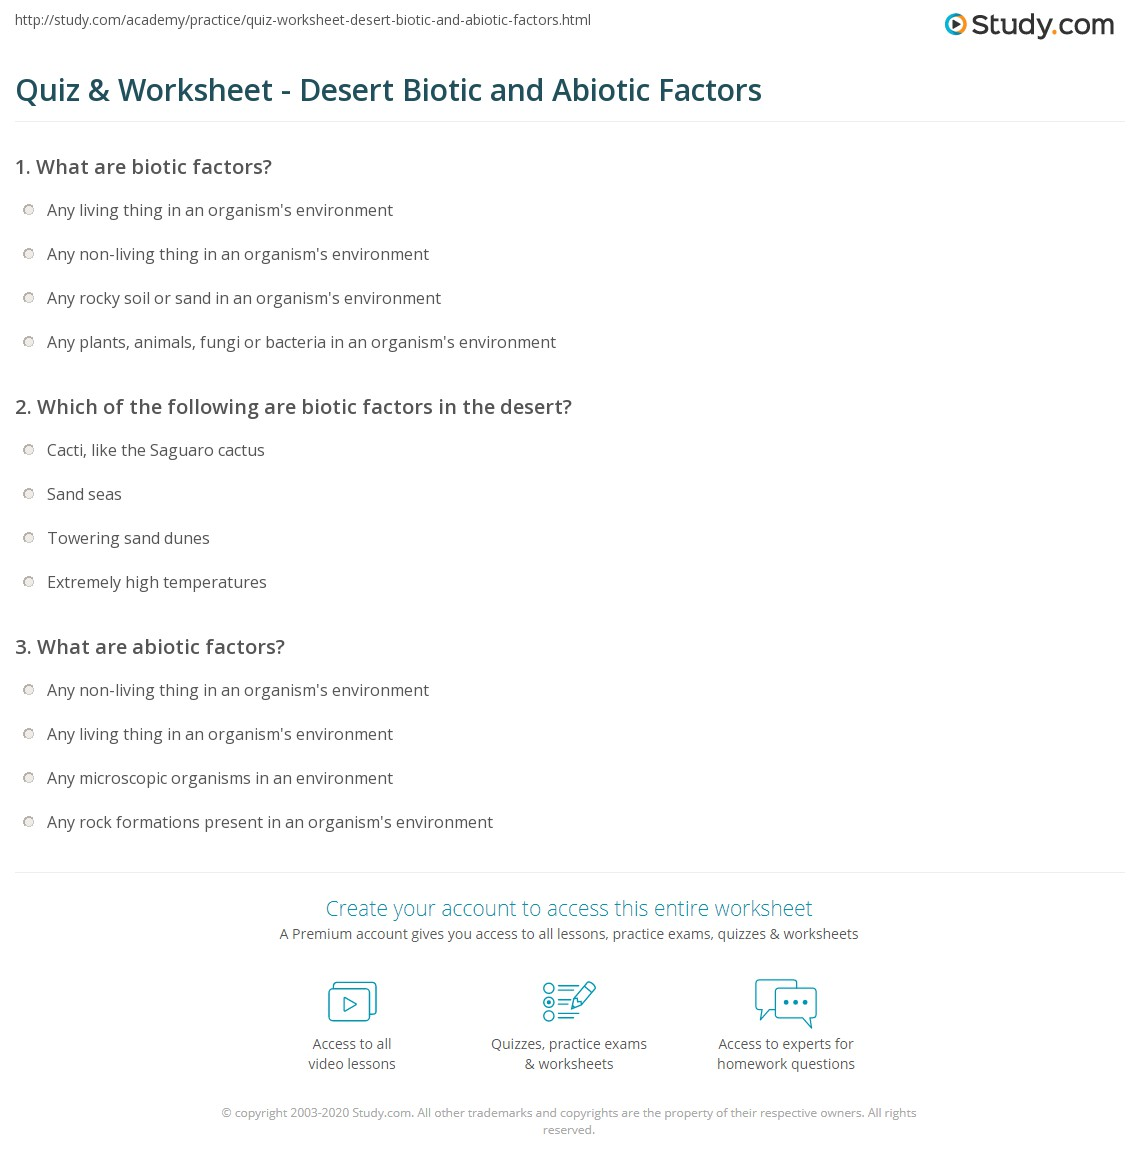 Worksheets Beethoven Lives Upstairs Worksheet biotic and abiotic worksheet worksheets for school toribeedesign quiz desert factors study com